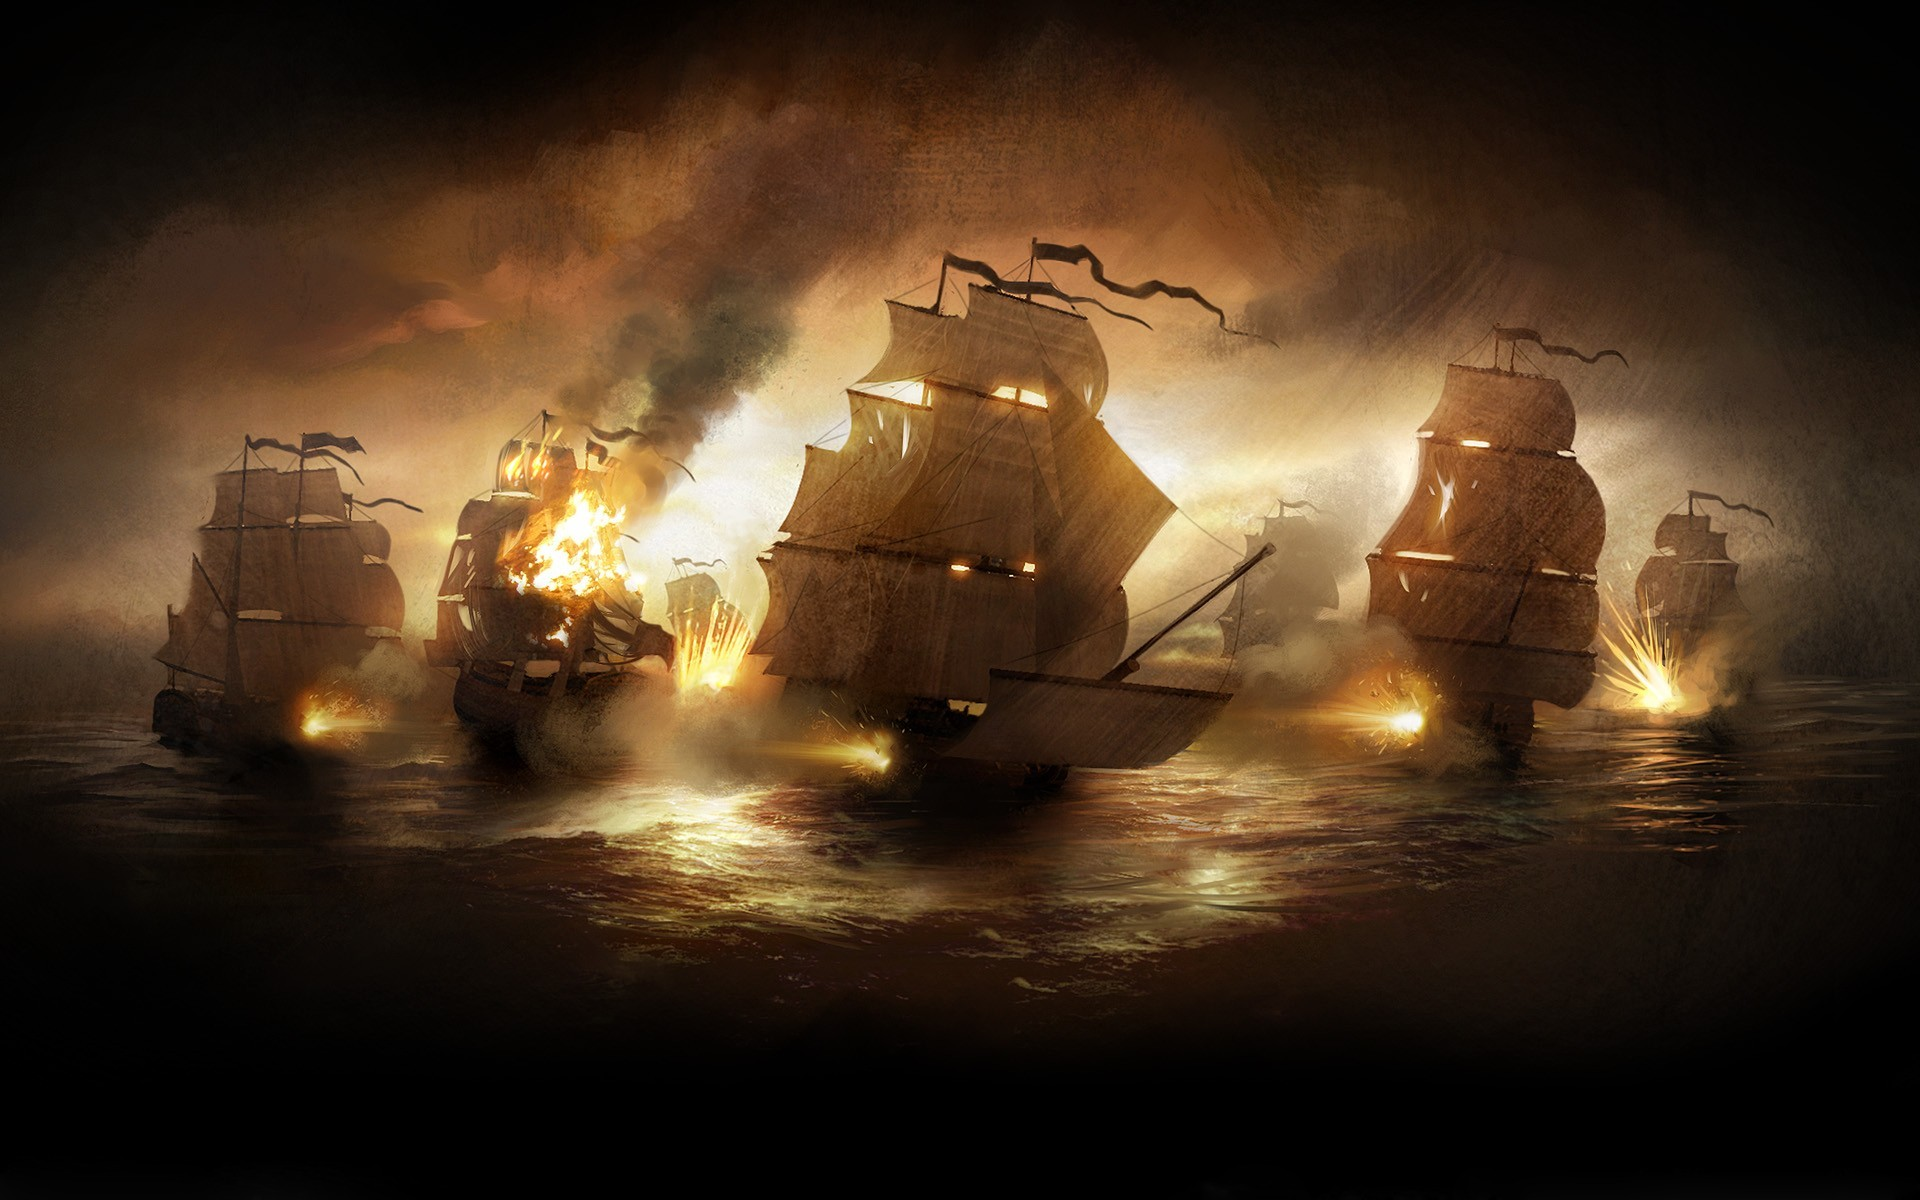 Old Sailing War Ships in Battle Painting gaming games images pictures  screenshots GameScapes GamingShot concept digital art VistaLore daily pics  beauty …